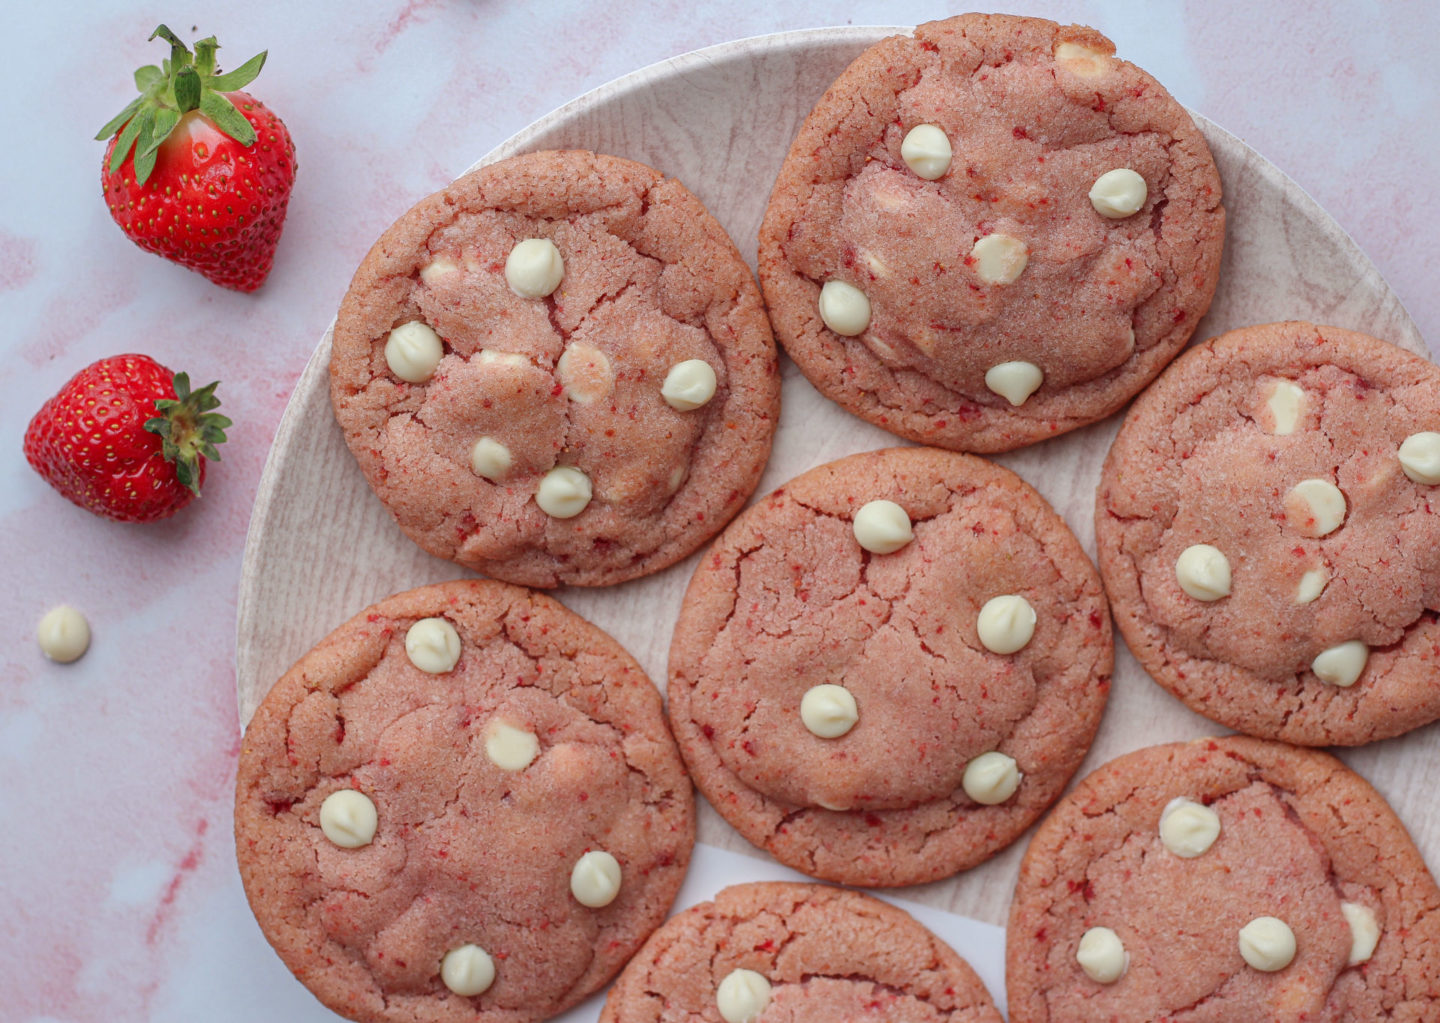 view from above of several strawberry white chocolate cookies on a small plate